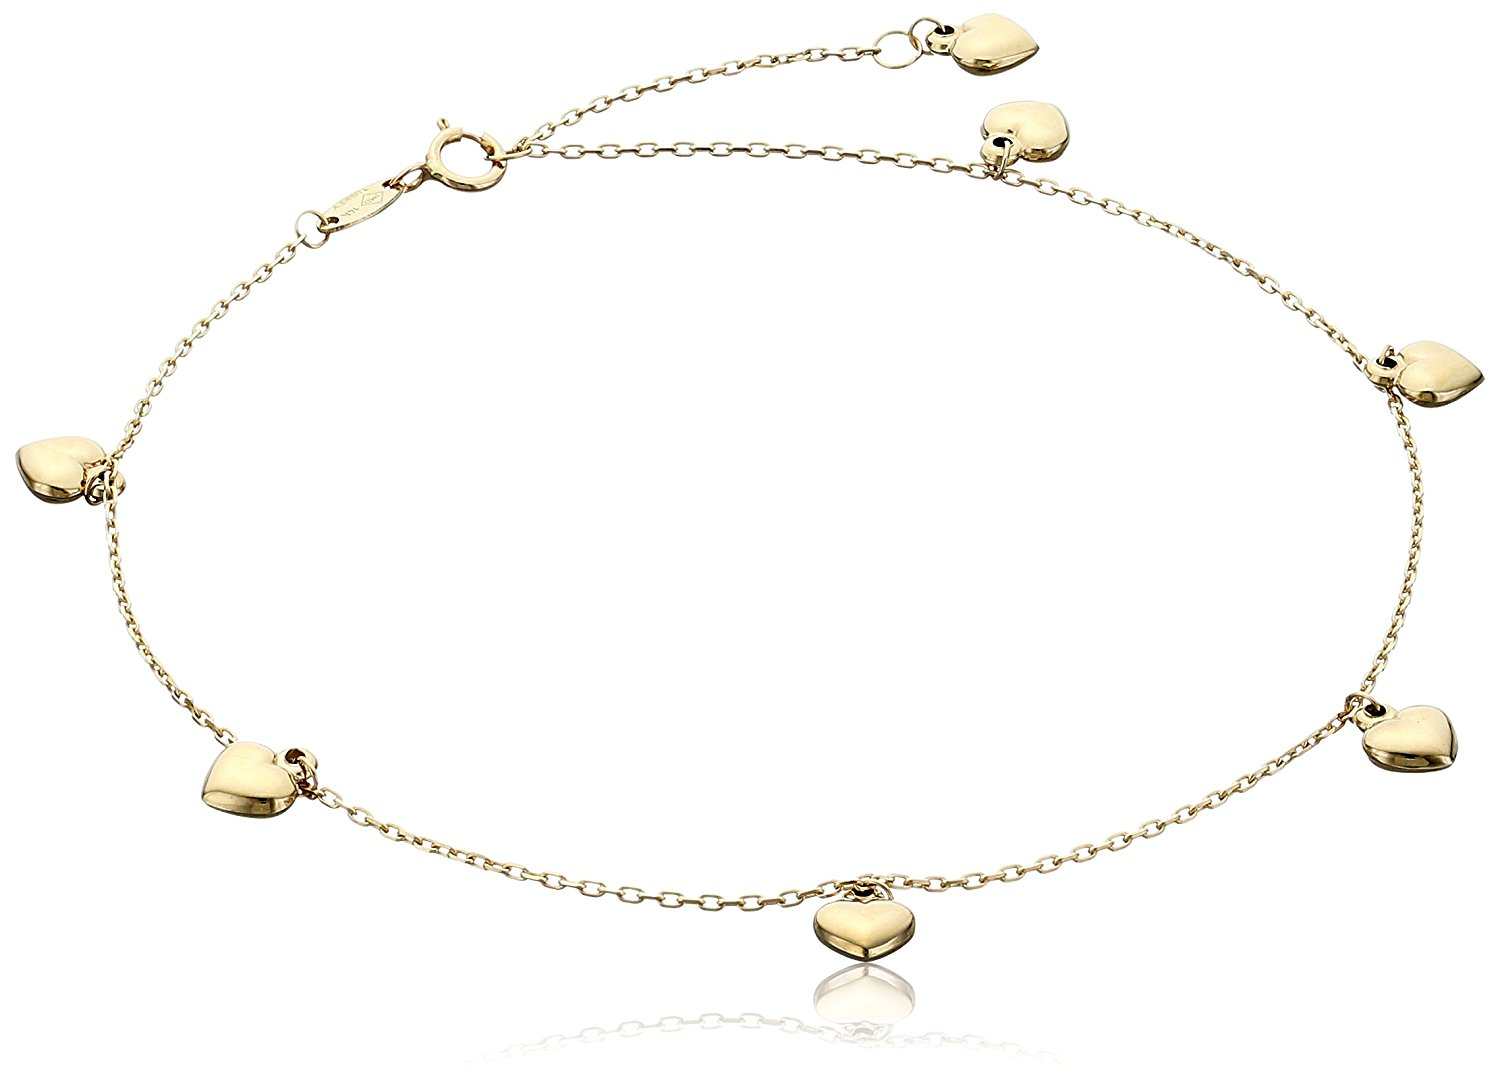 14k Yellow Gold Puffy Heart Charms Rolo Chain Adjustable Anklet, 9' + 1' Extender